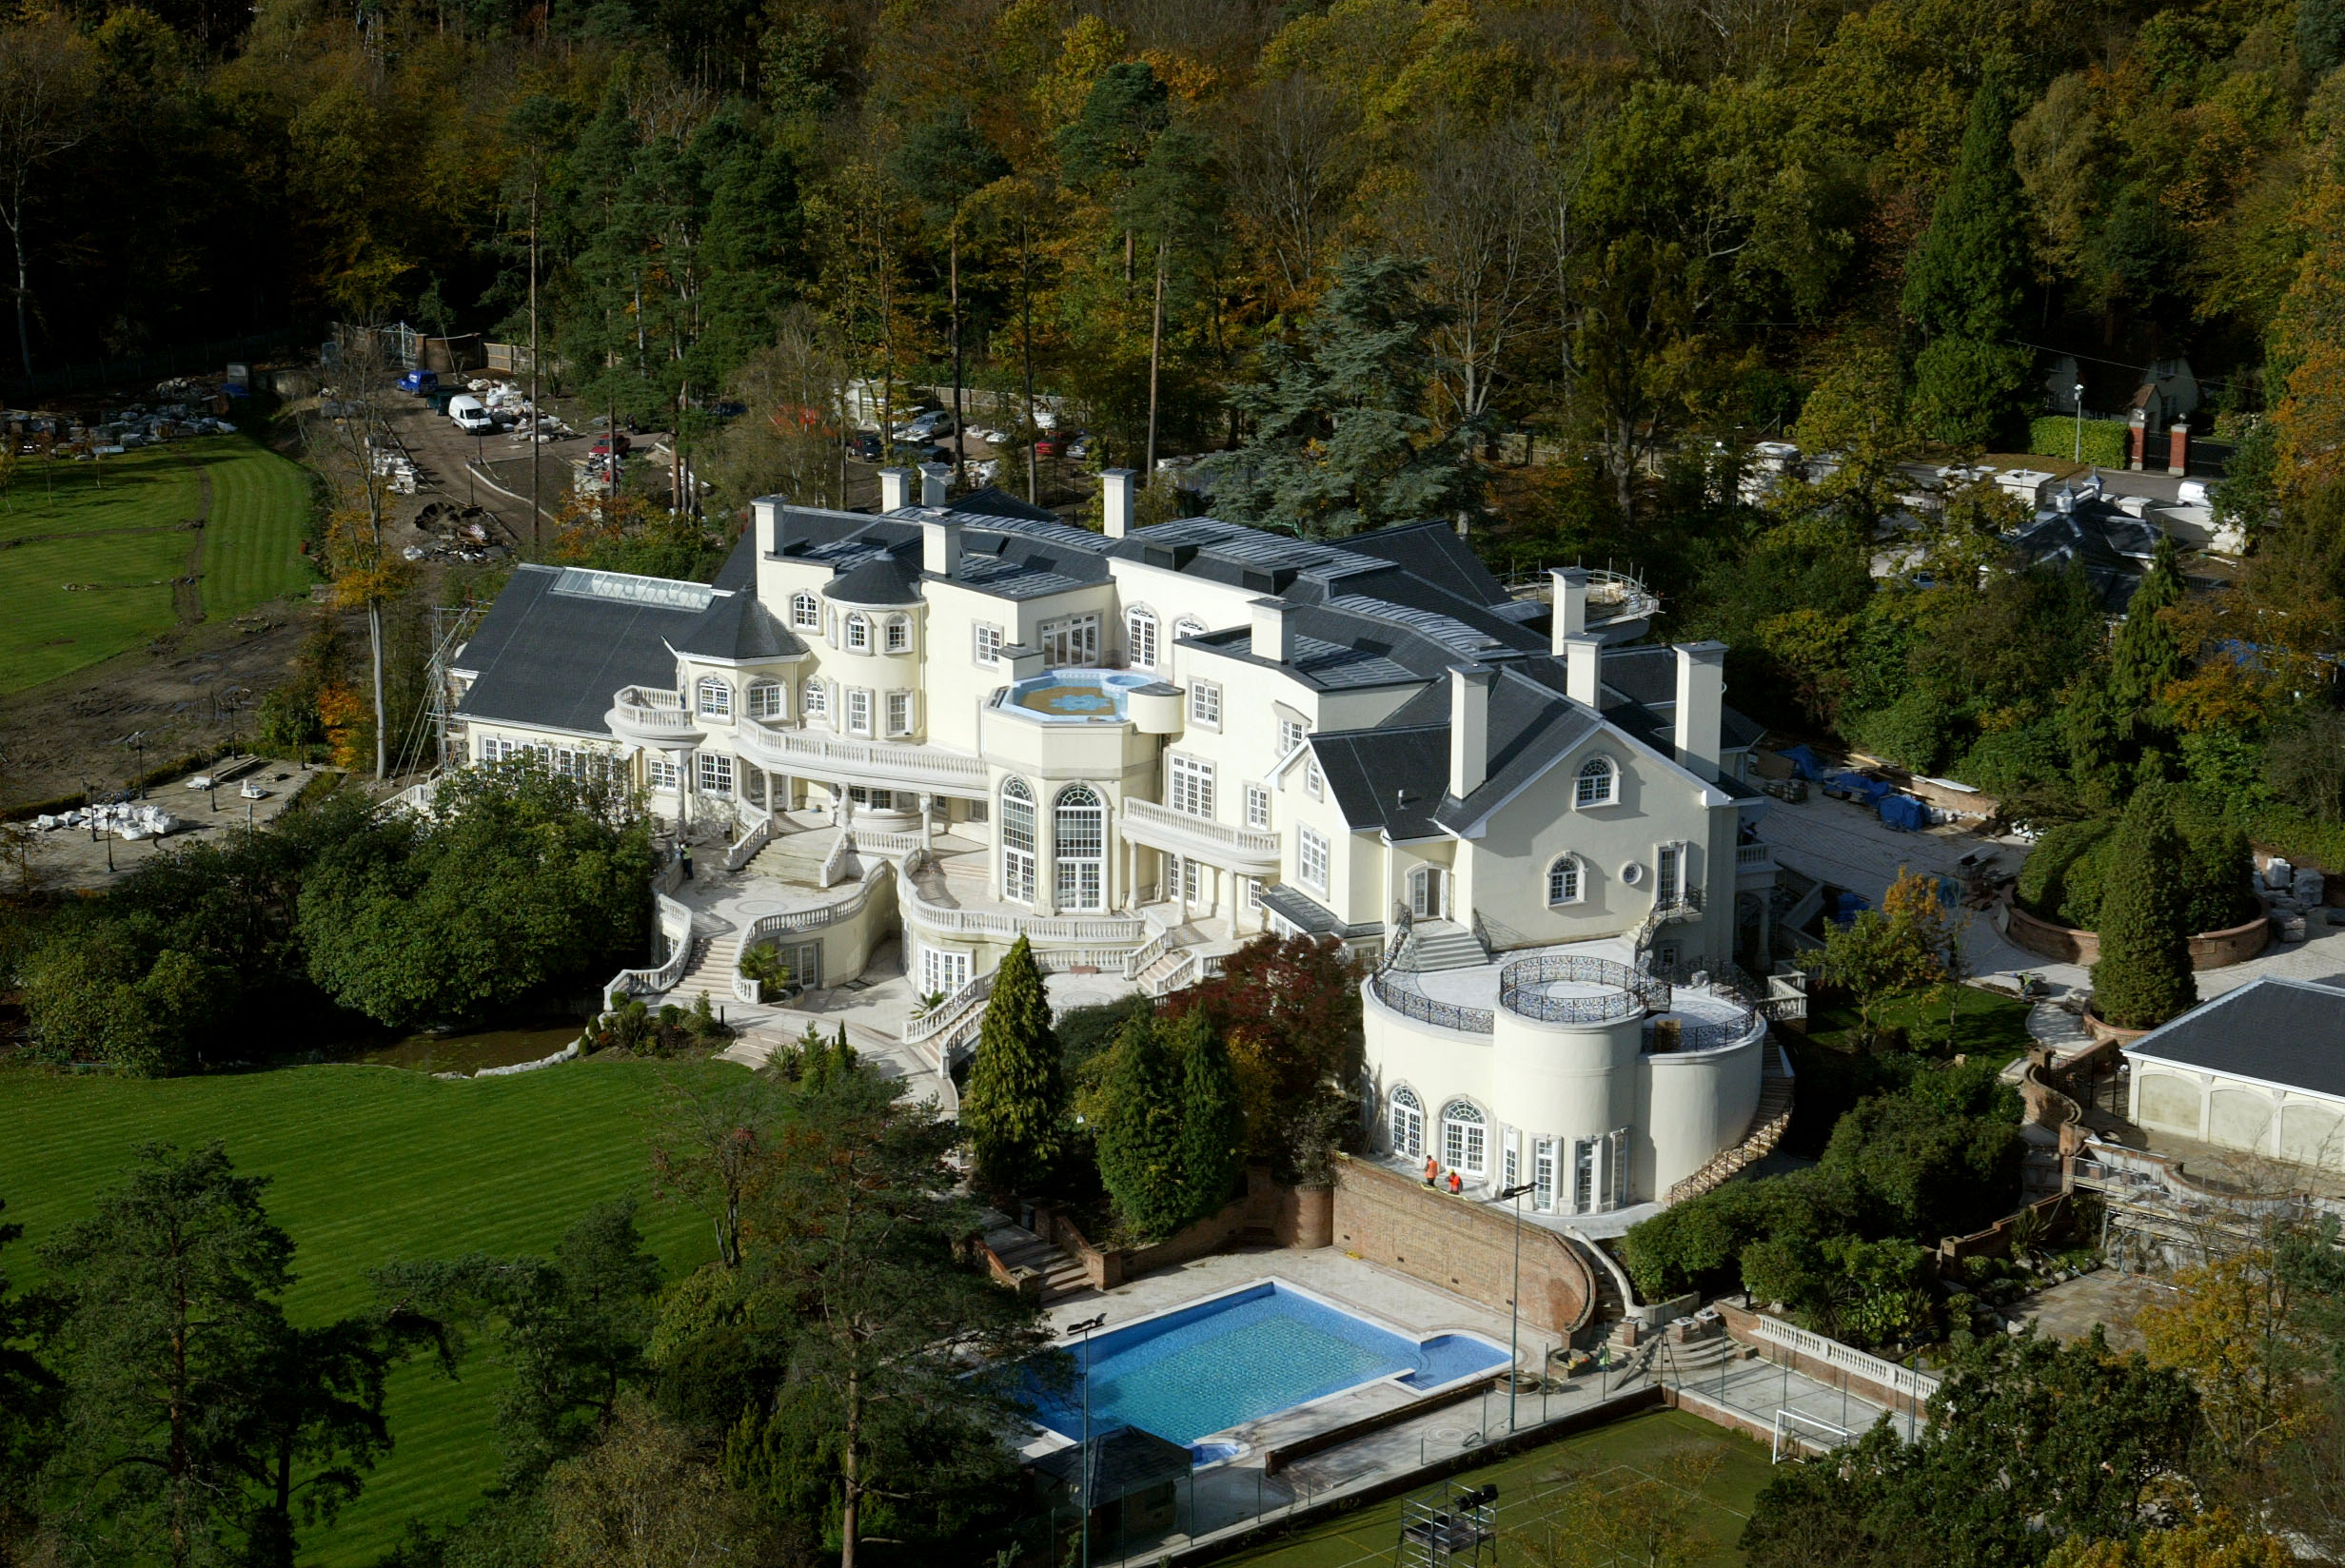 Most Expensive House Ever Updown court helicopter